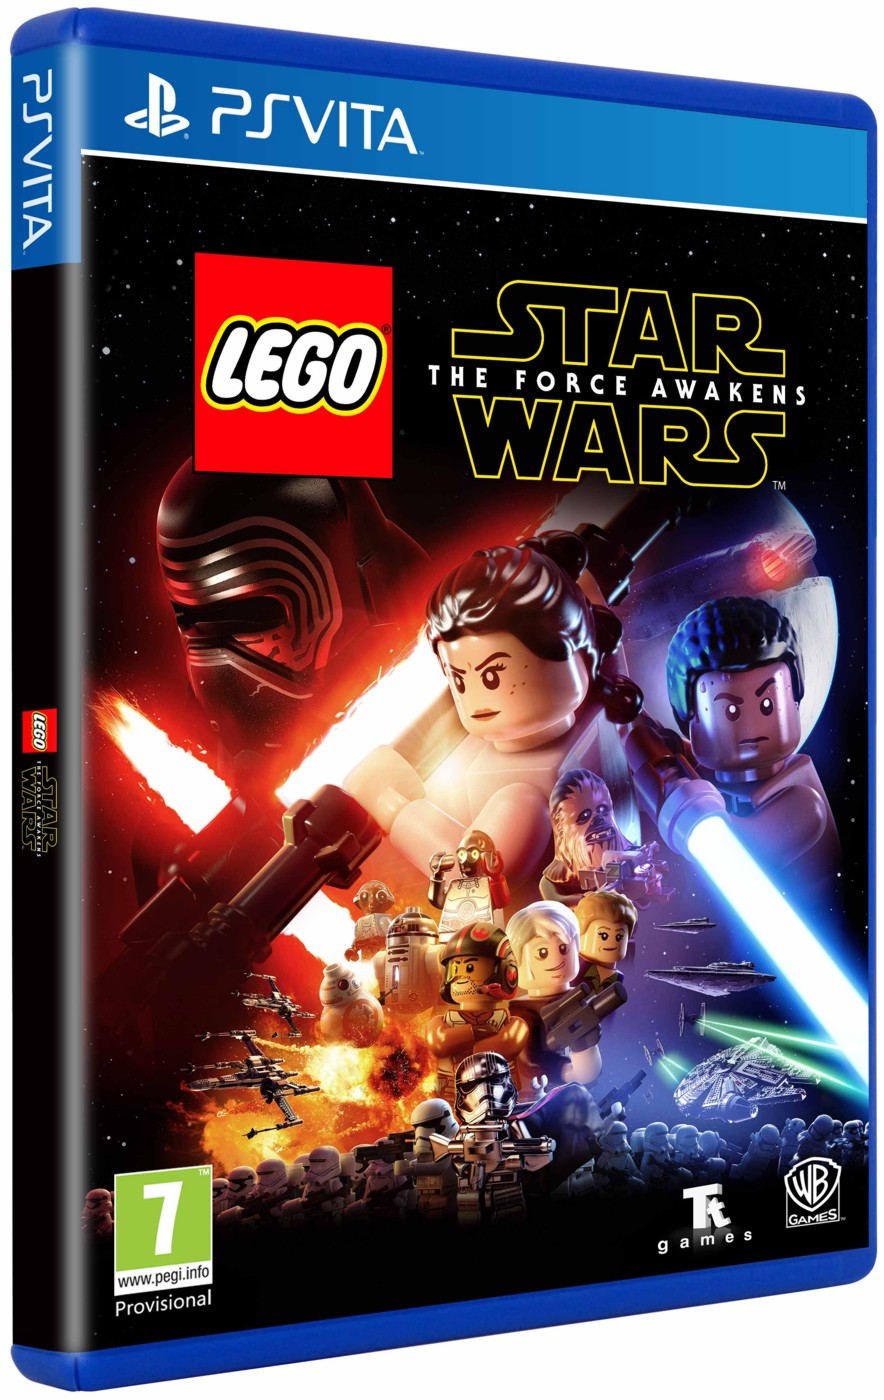 náhled LEGO STAR WARS: THE FORCE AWAKENS - PS Vita